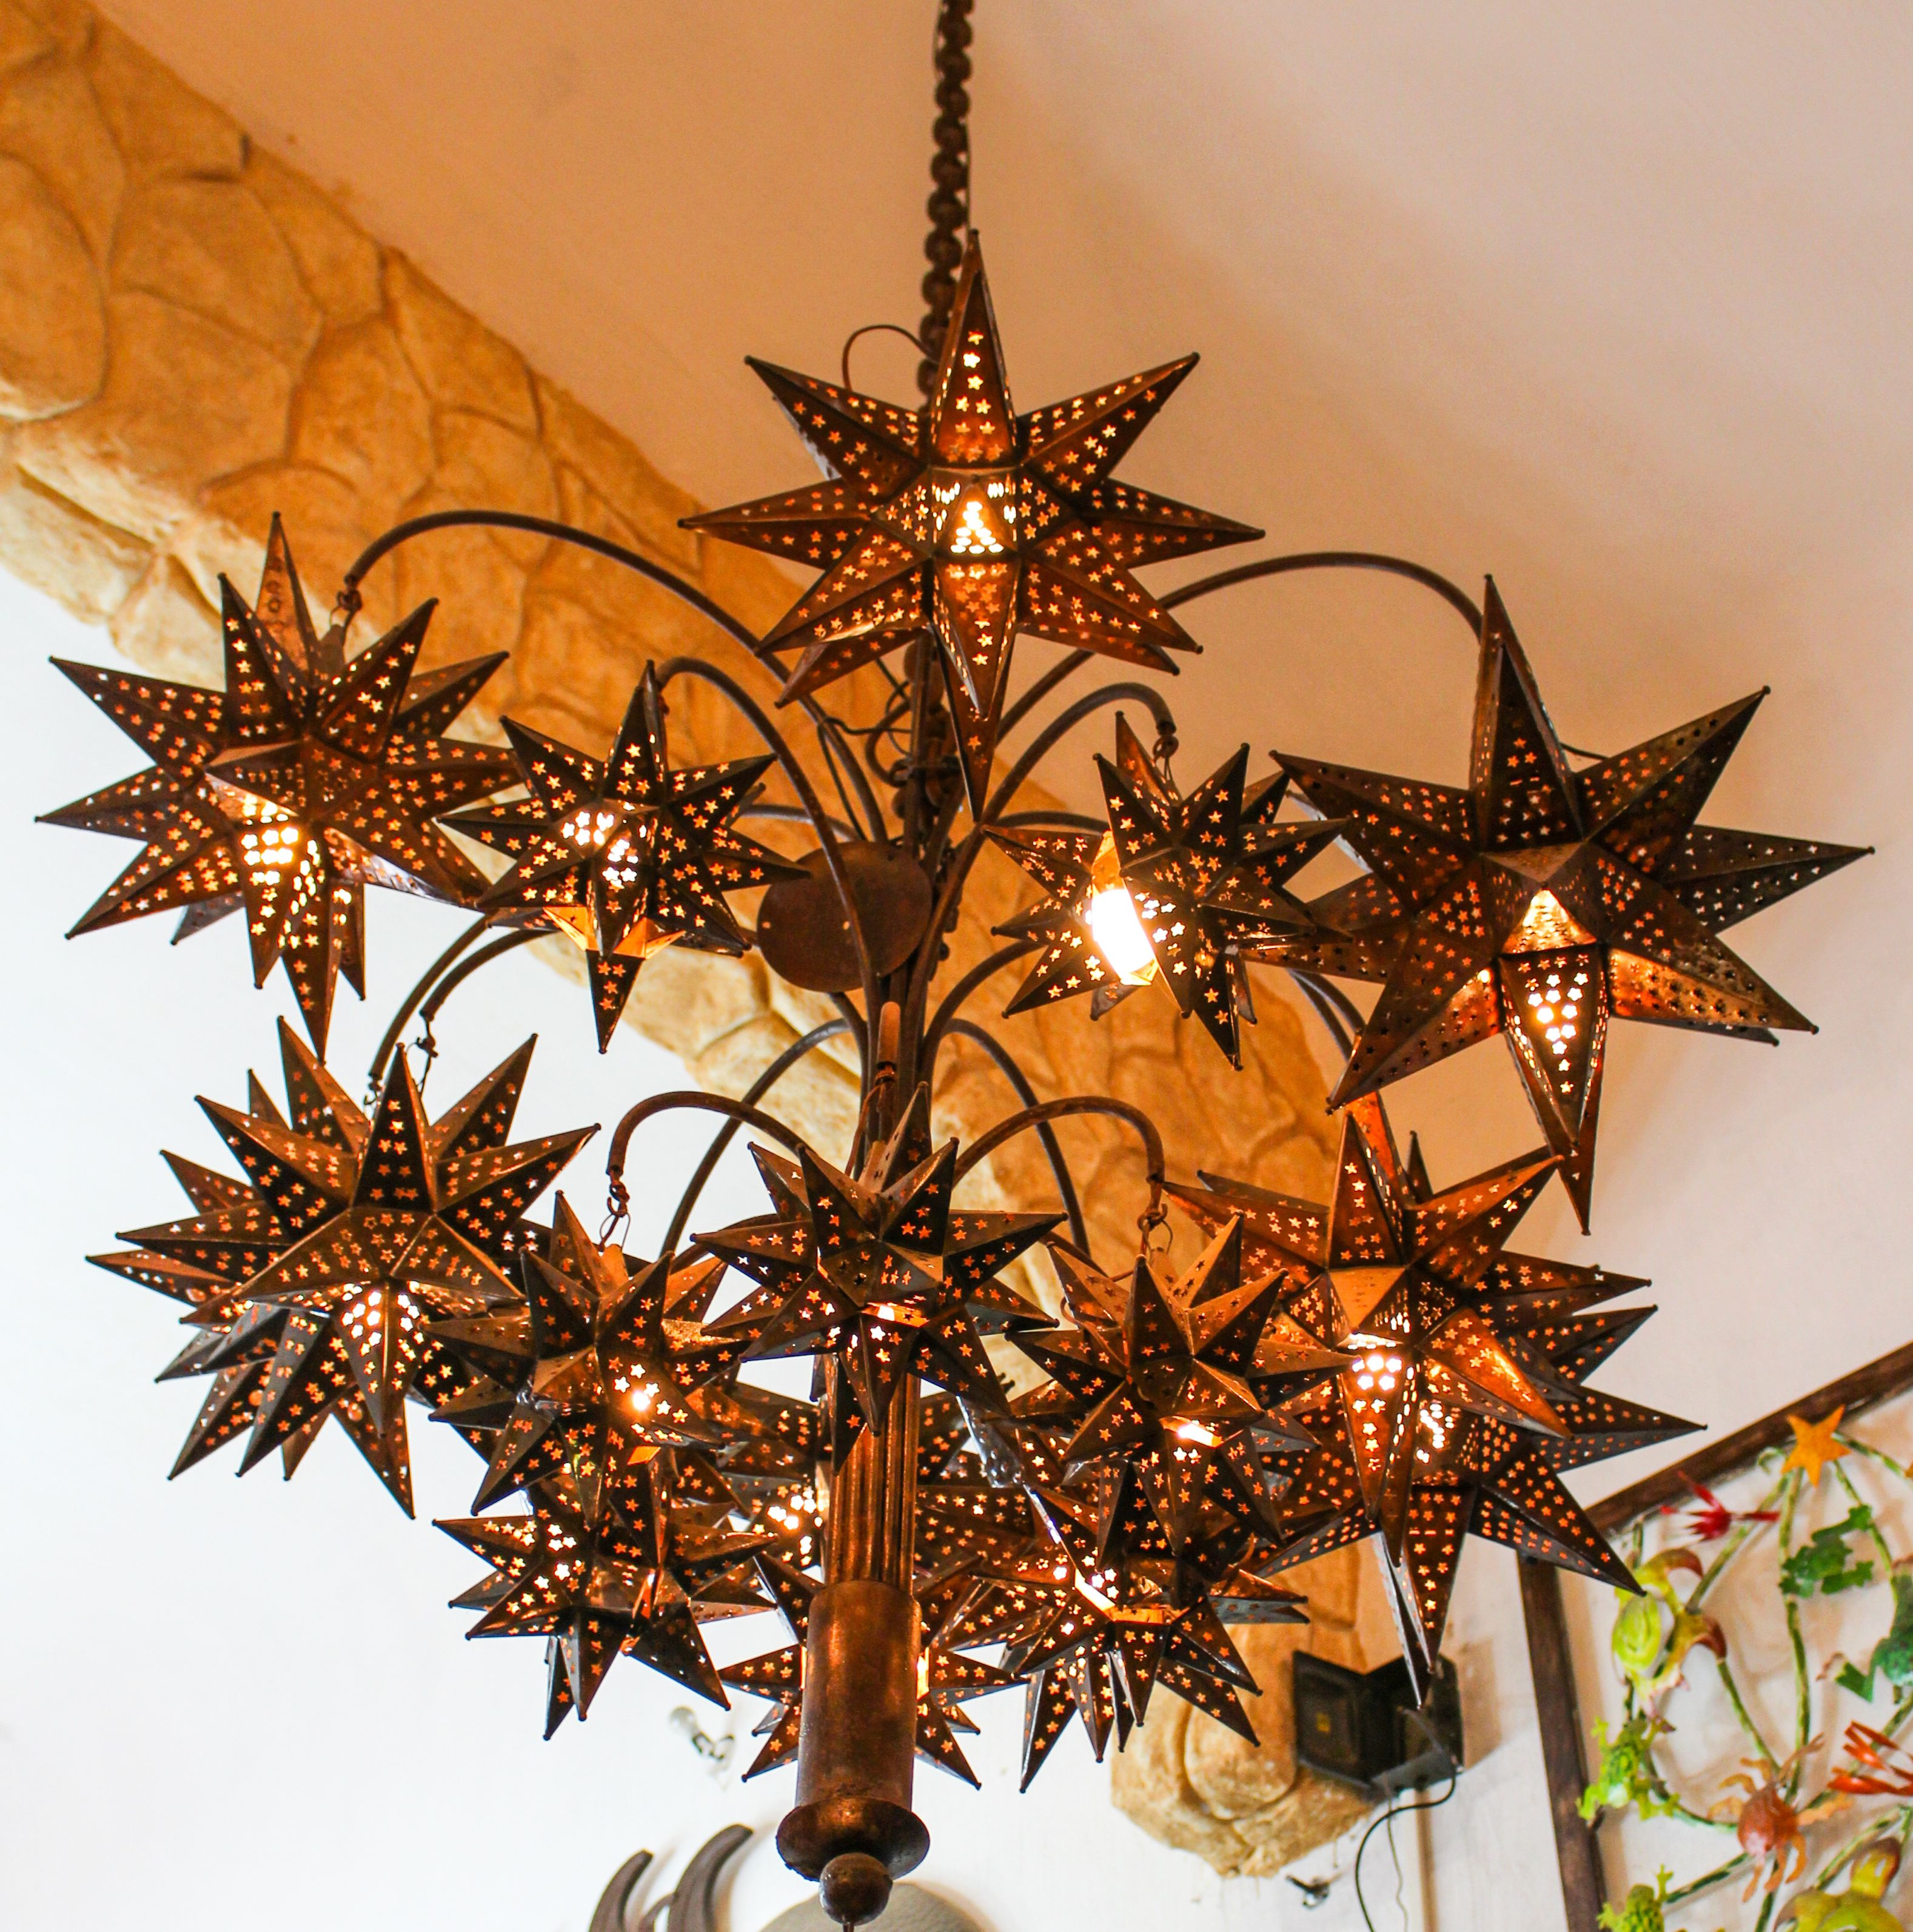 of lighting party glass shop pin el chandelier and callejon evolution as string decor moravian more one illuminate for lights at handmade tin our a light home pinterest stars hometown star use art or